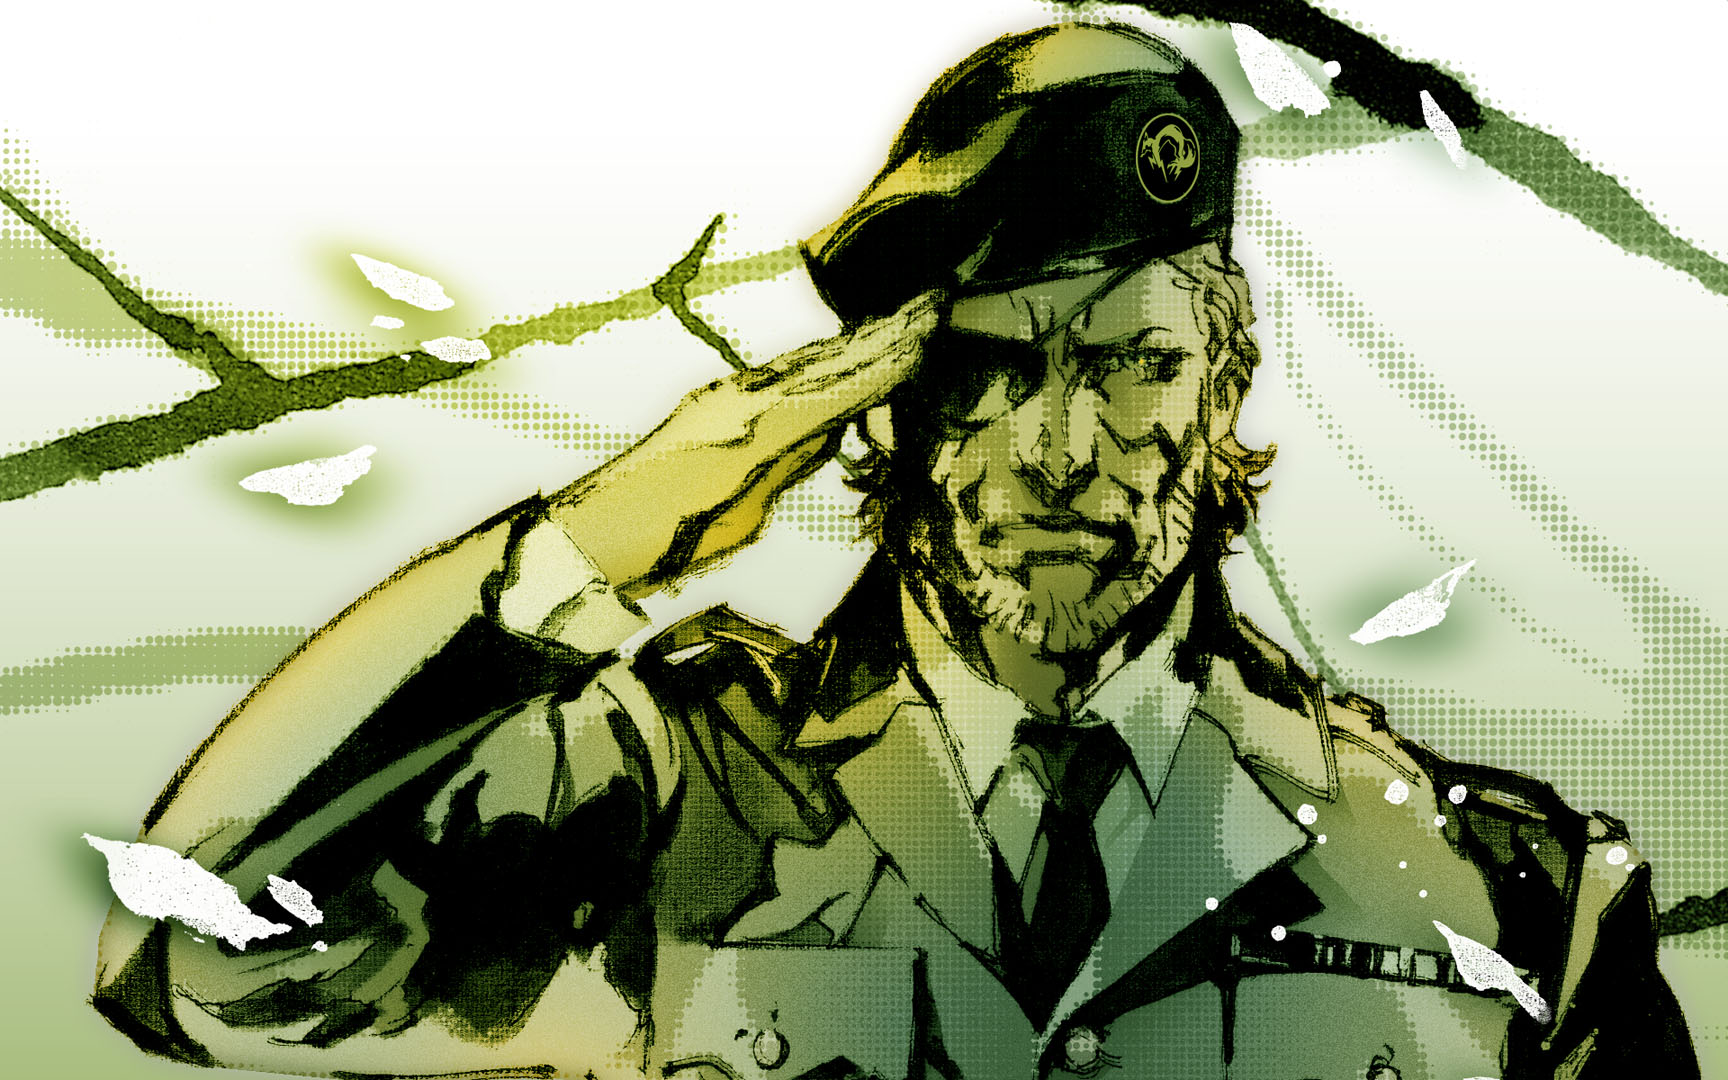 https://ayay.co.uk/backgrounds/action_rpg_games/metal_gear_solid/colonel-roy-campell-saluting.jpg